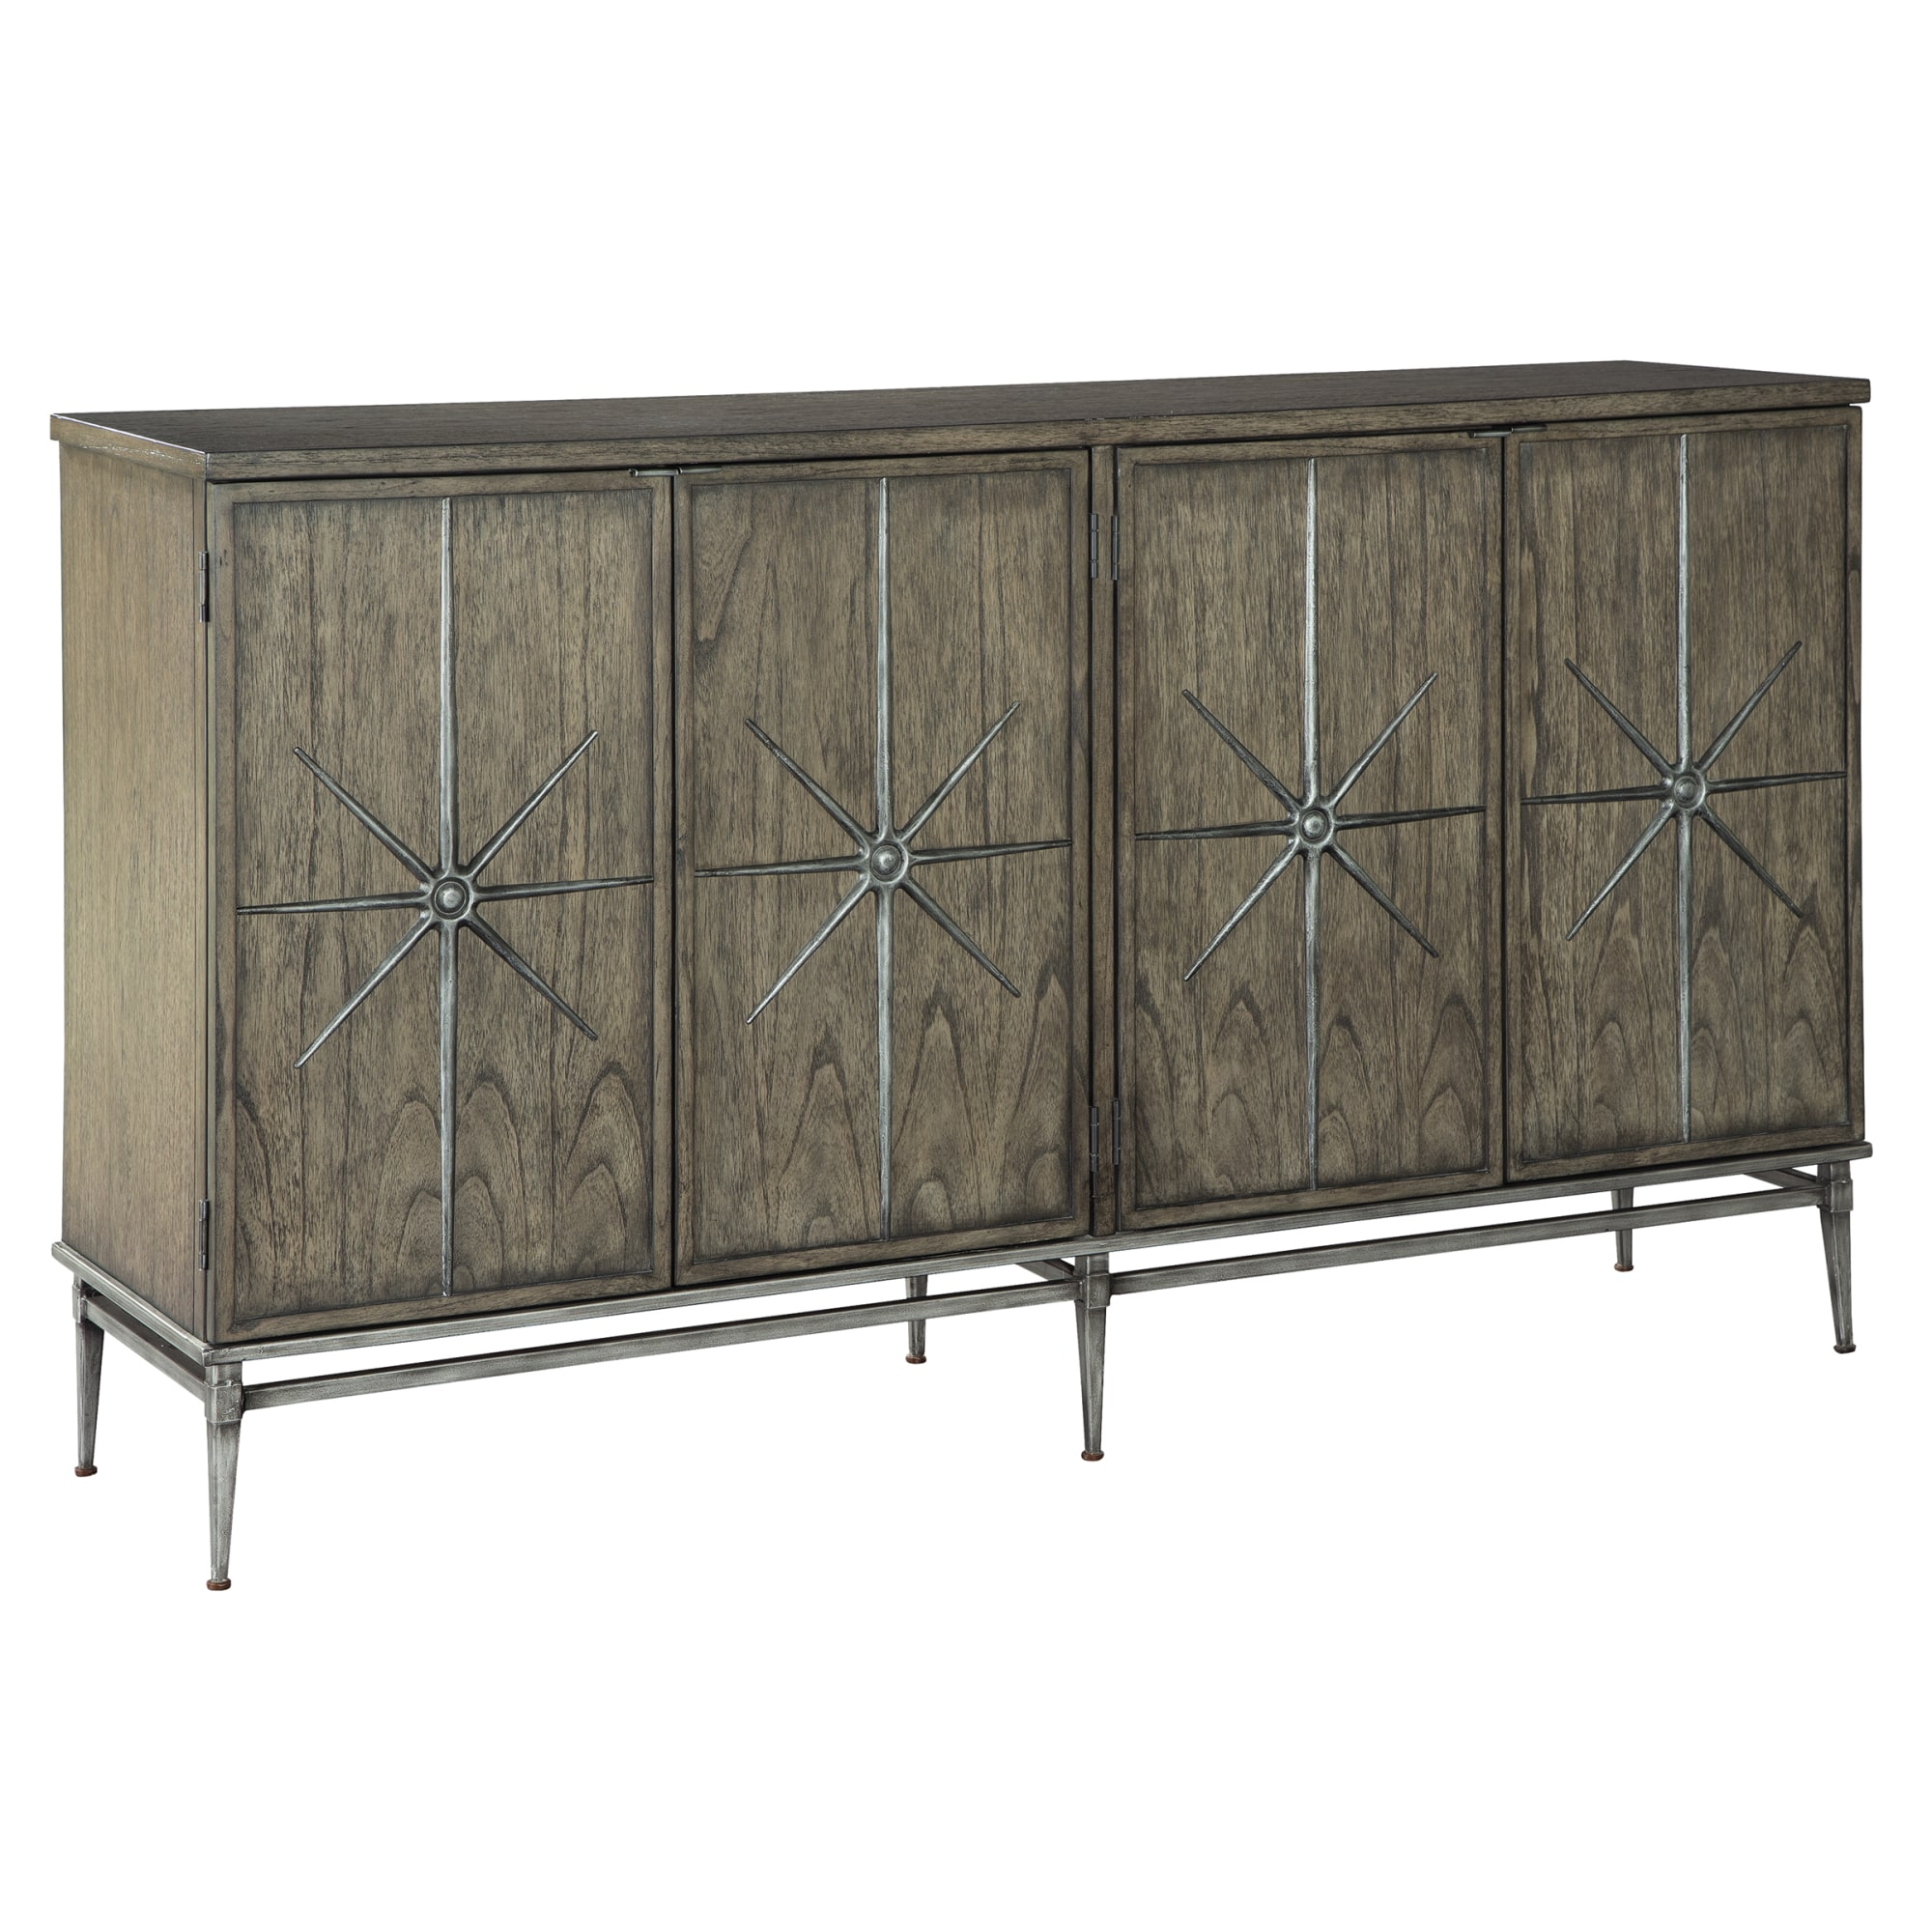 Image for 2-8022 Four Door Star Entertainment Center from Hekman Official Website